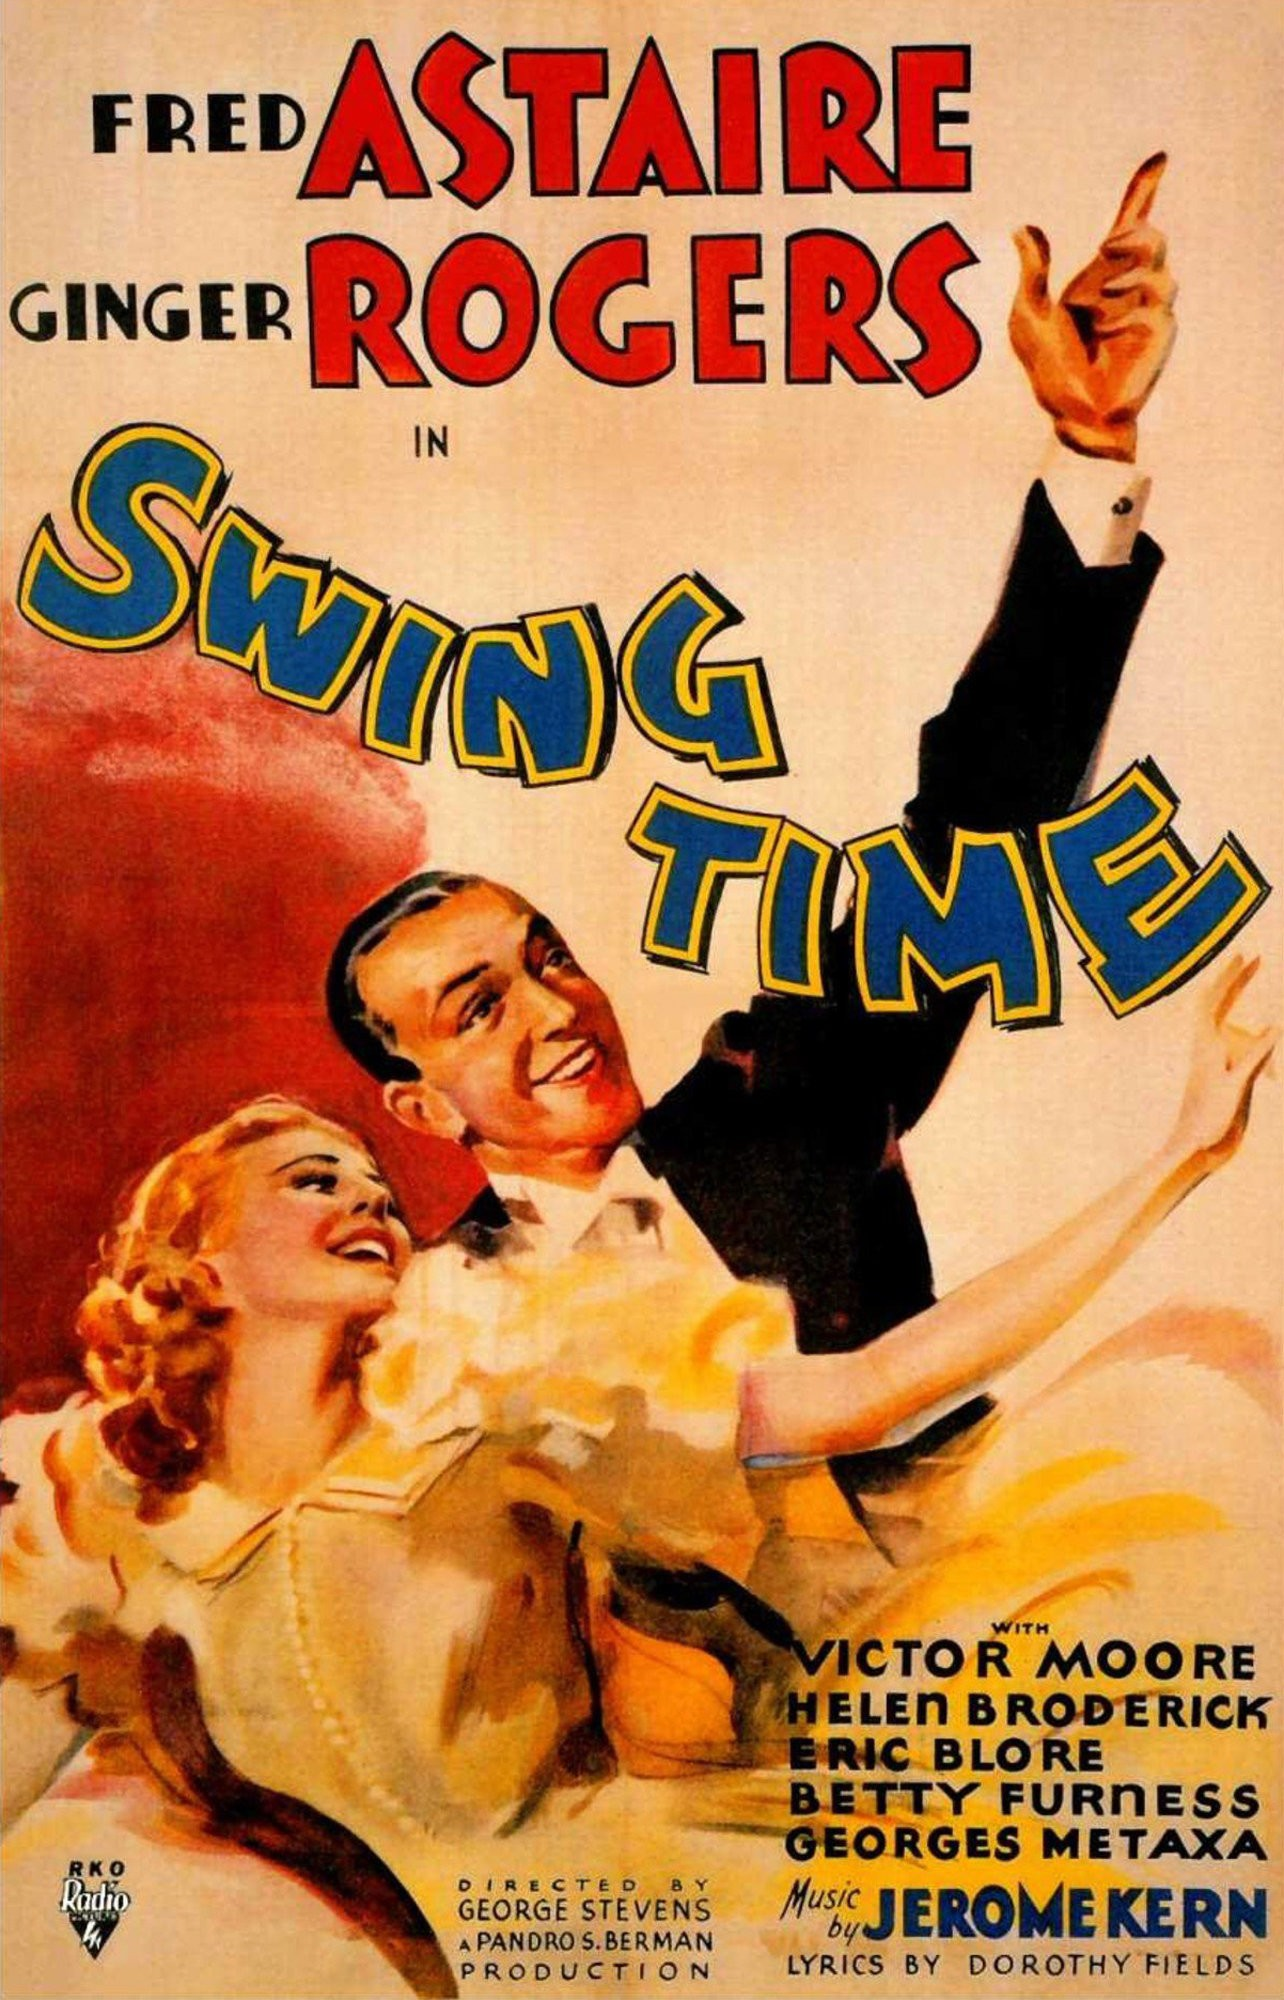 Large swingtime